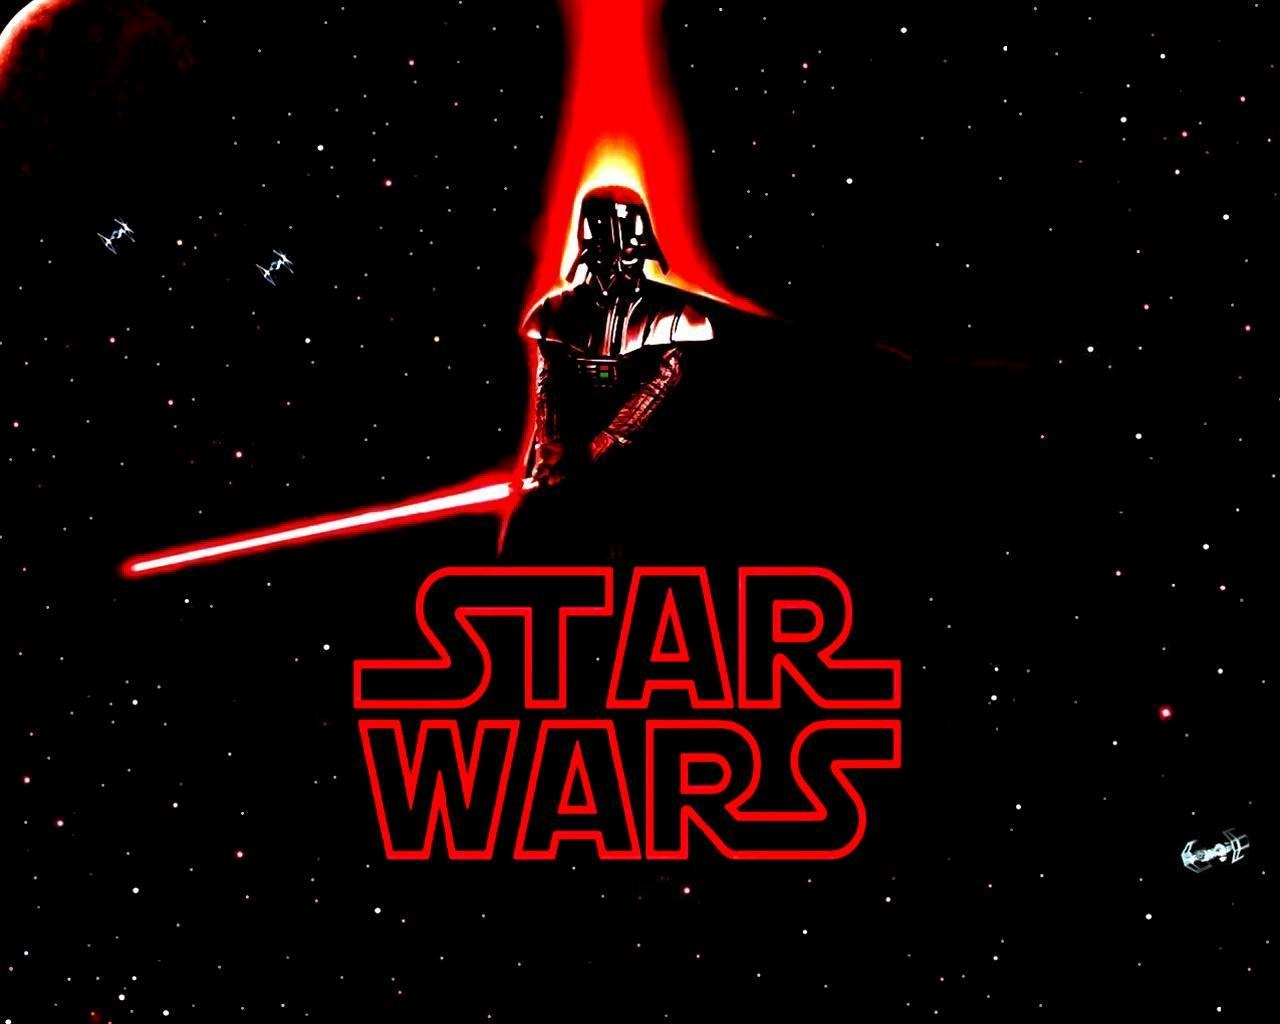 STAR WAR WALLPAPER Star Wars Hd Wallpaper 1280x1024